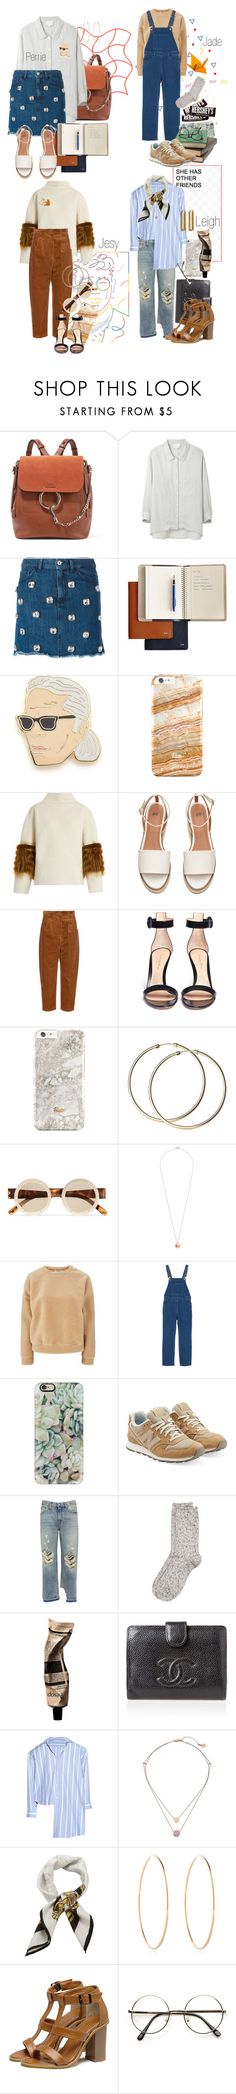 """NYFW"" by voidjesy ❤ liked on Polyvore featuring Chloé, Band of Outsiders, Au Jour Le Jour, Georgia Perry, Saks Potts, Hillier Bartley, Gianvito Rossi, Le Specs, Dorothy Perkins and Glamorous"